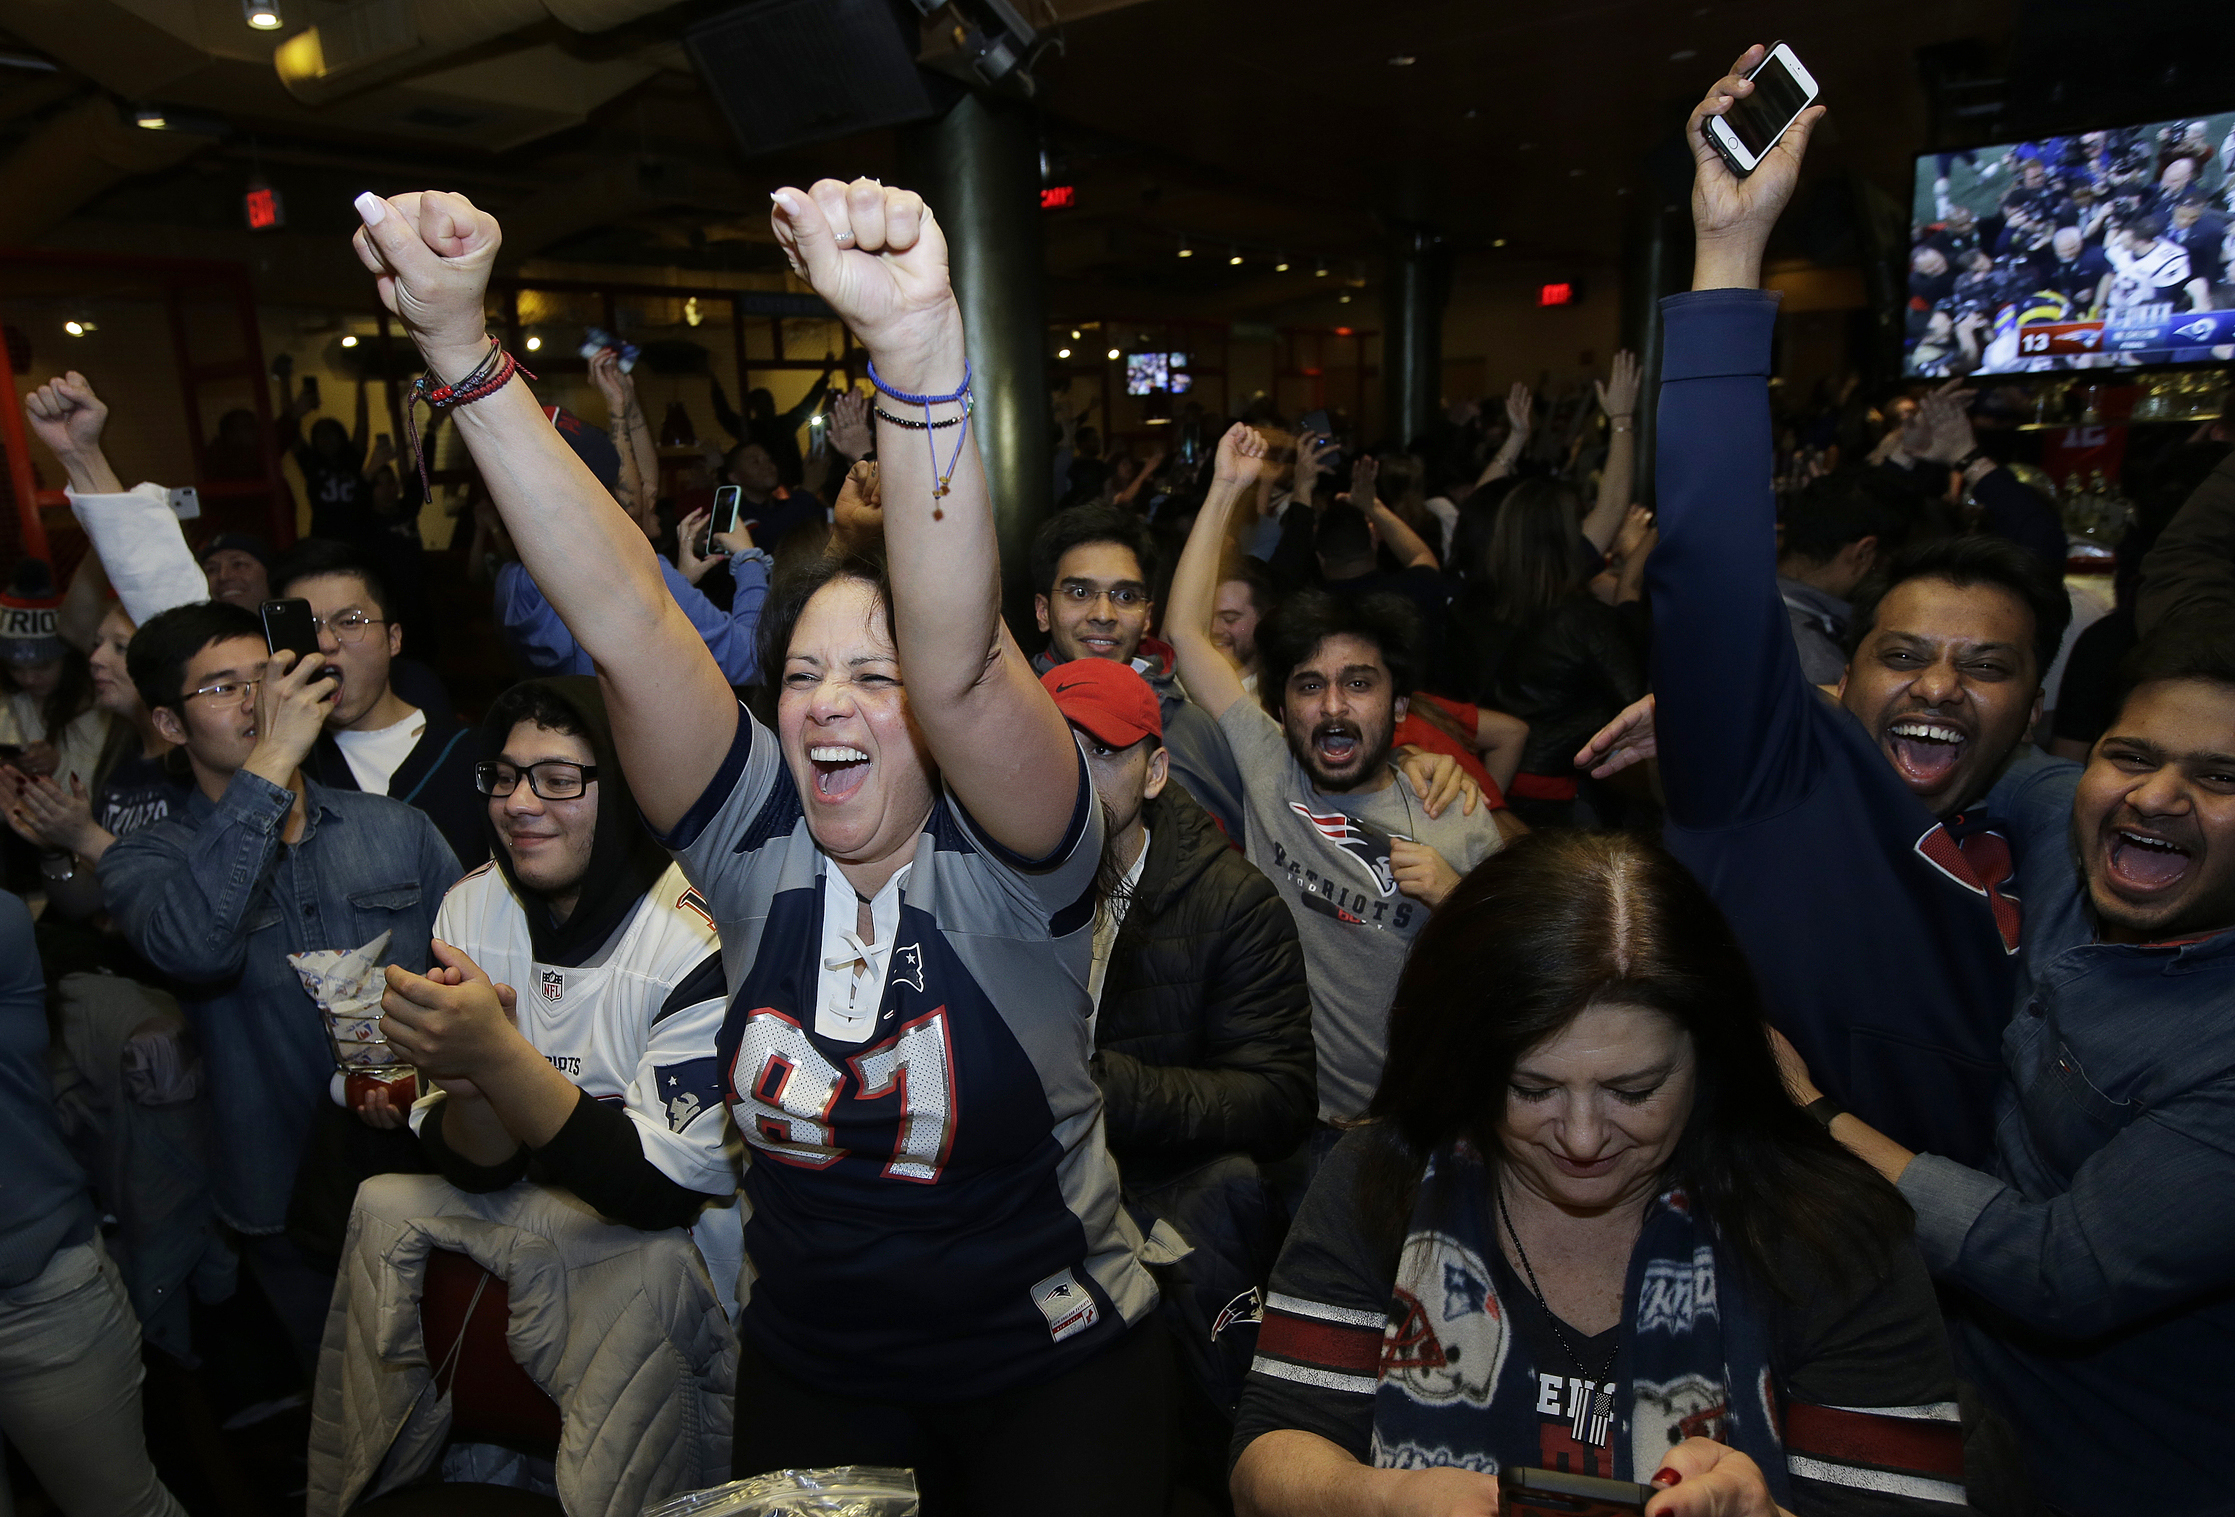 New England Patriots fans celebrate after the Patriots defeated the Los Angeles Rams in the NFL Super Bowl 53 football game in Atlanta at a bar in Boston on Sunday, Feb. 3, 2019.